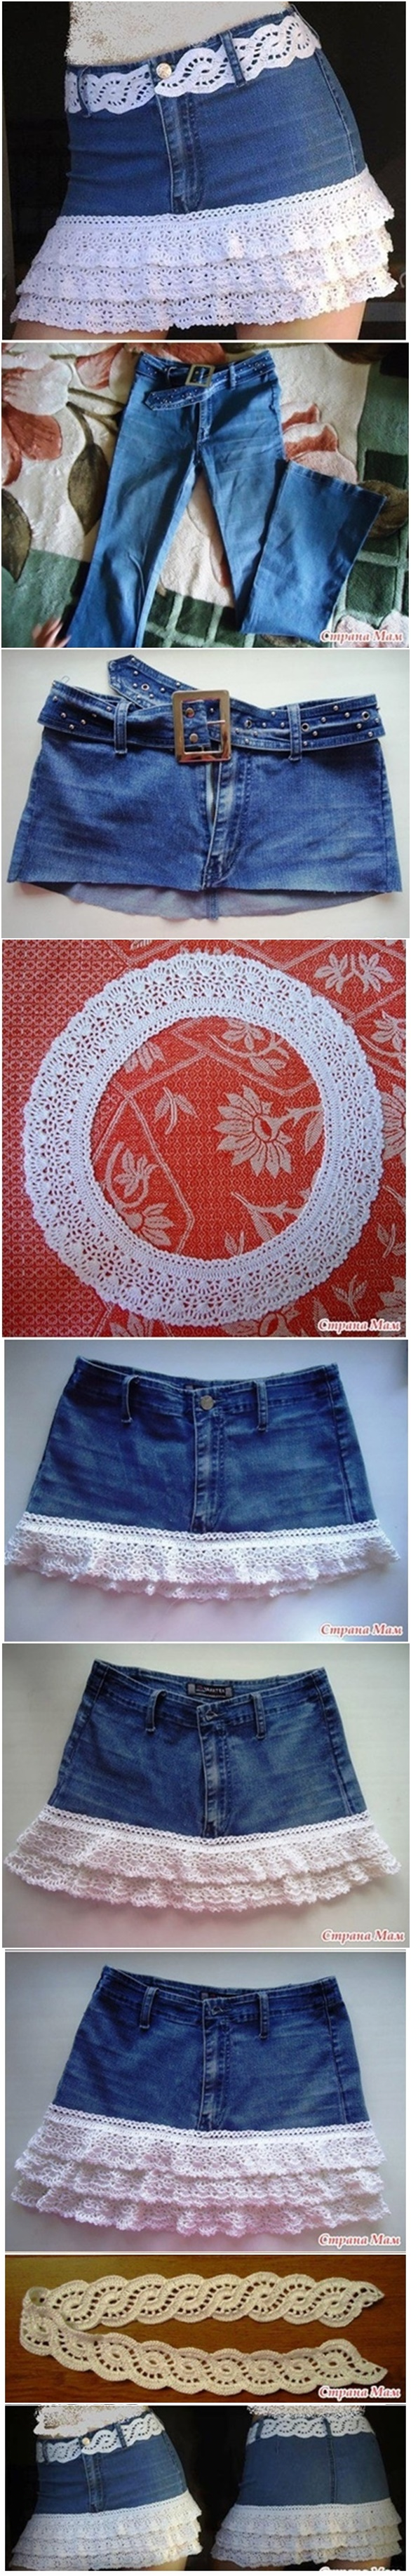 crochet-fringed-jean-skirt